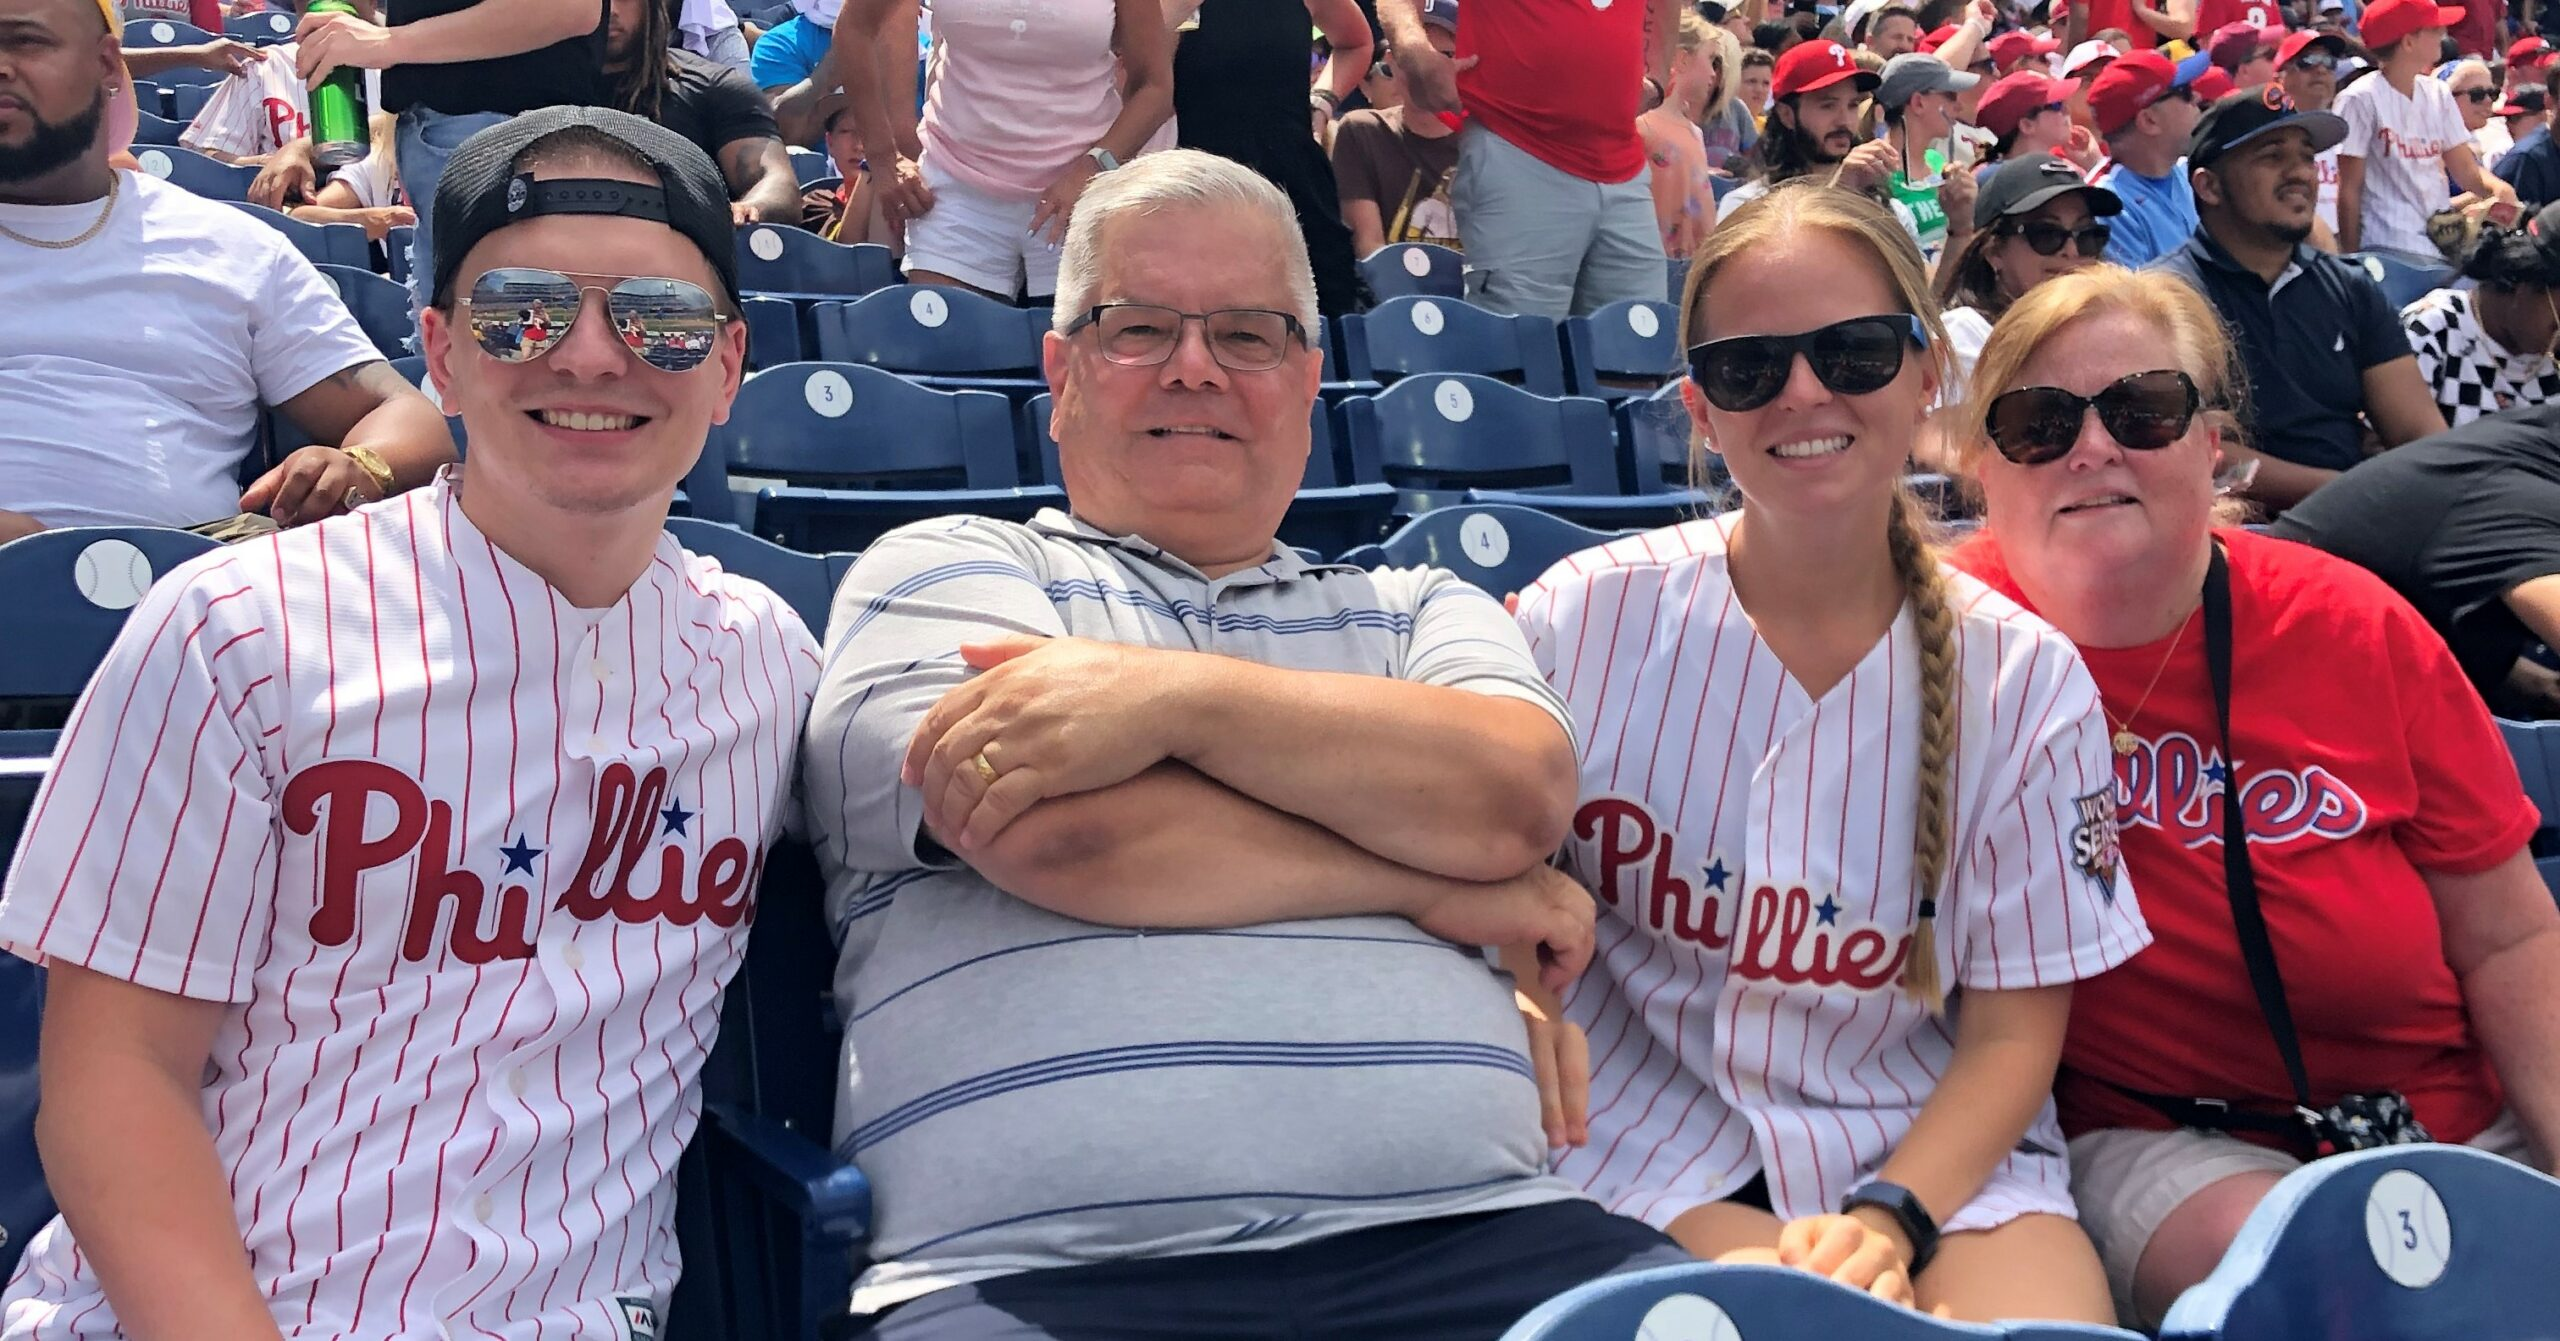 Company-Provided Phillies Tickets on July 4th